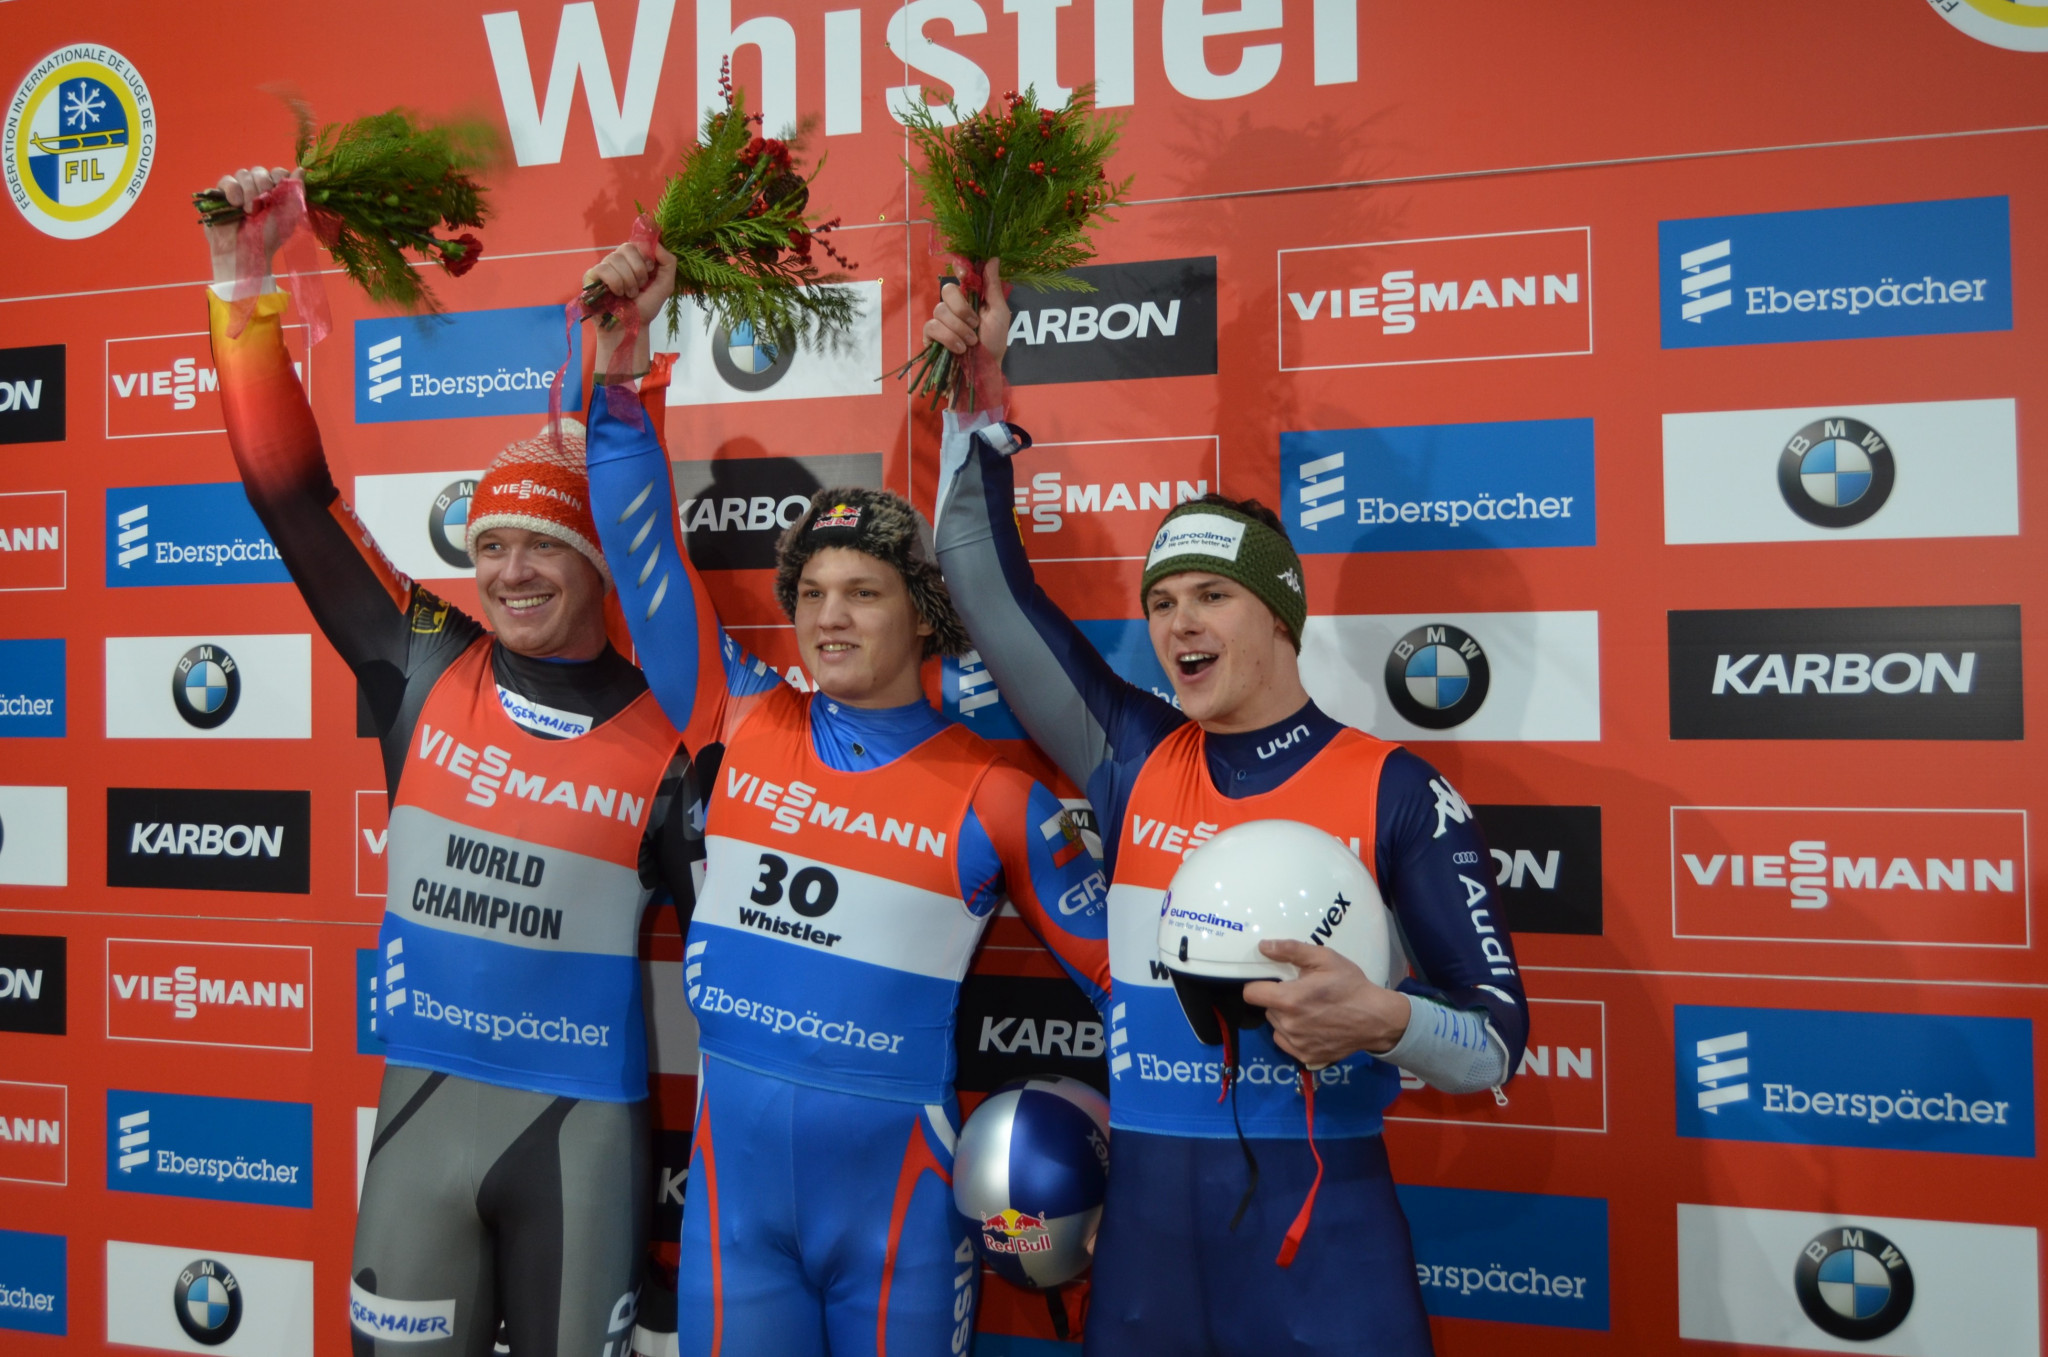 Russia dominate singles events at Luge World Cup in Whistler